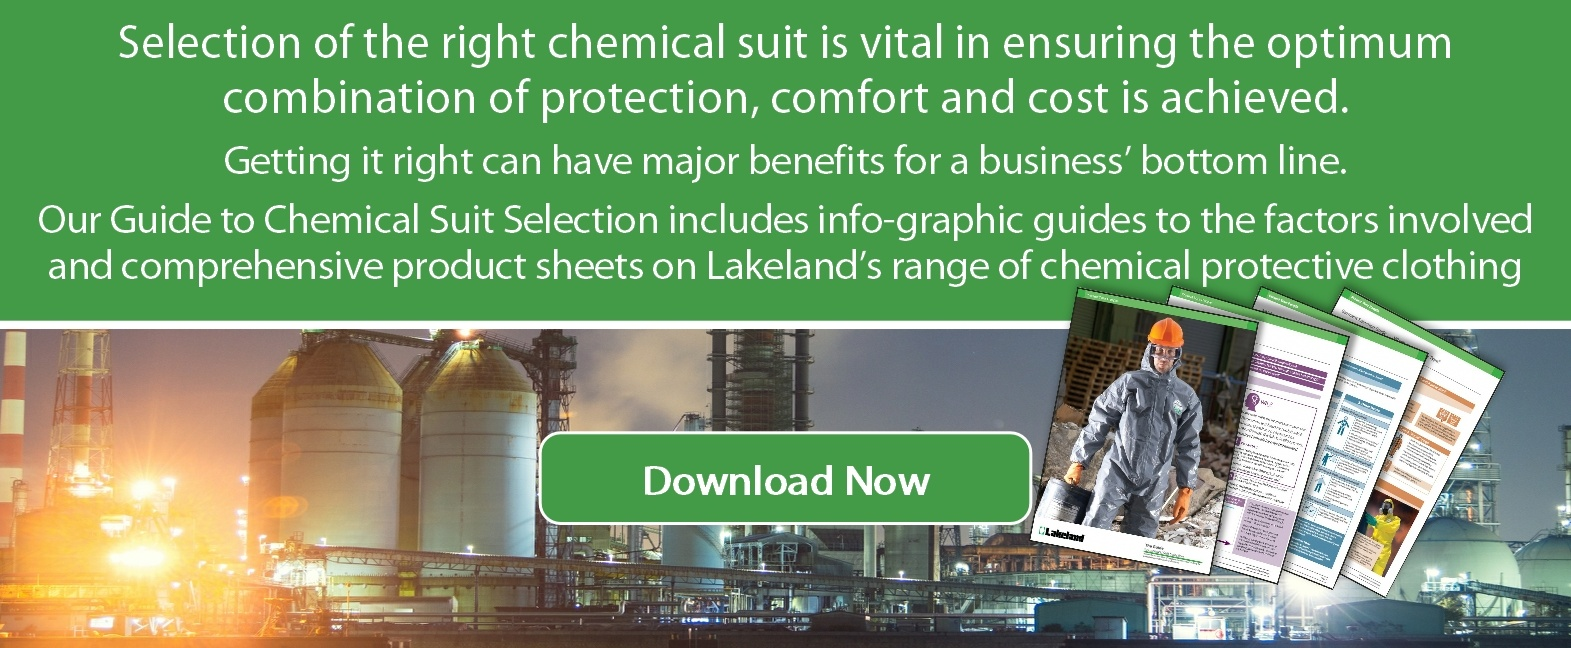 Download our free guide to selecting the Best Chemical Resistance Clothing for the Job